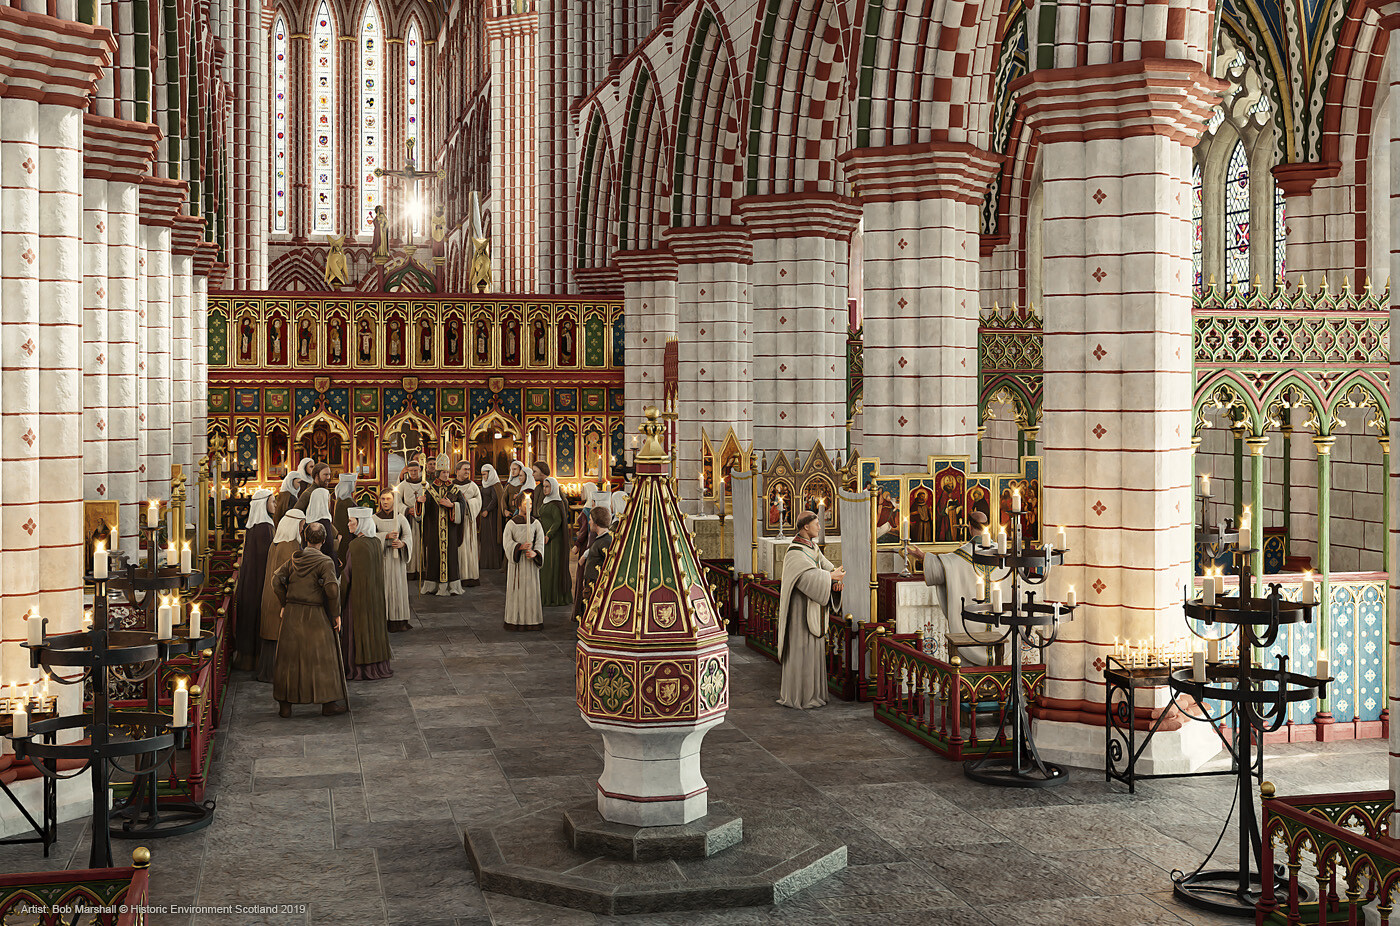 Digital Reconstruction of Glasgow Cathedral (c15th). Original rendering produced for Historic Environment Scotland (2019)